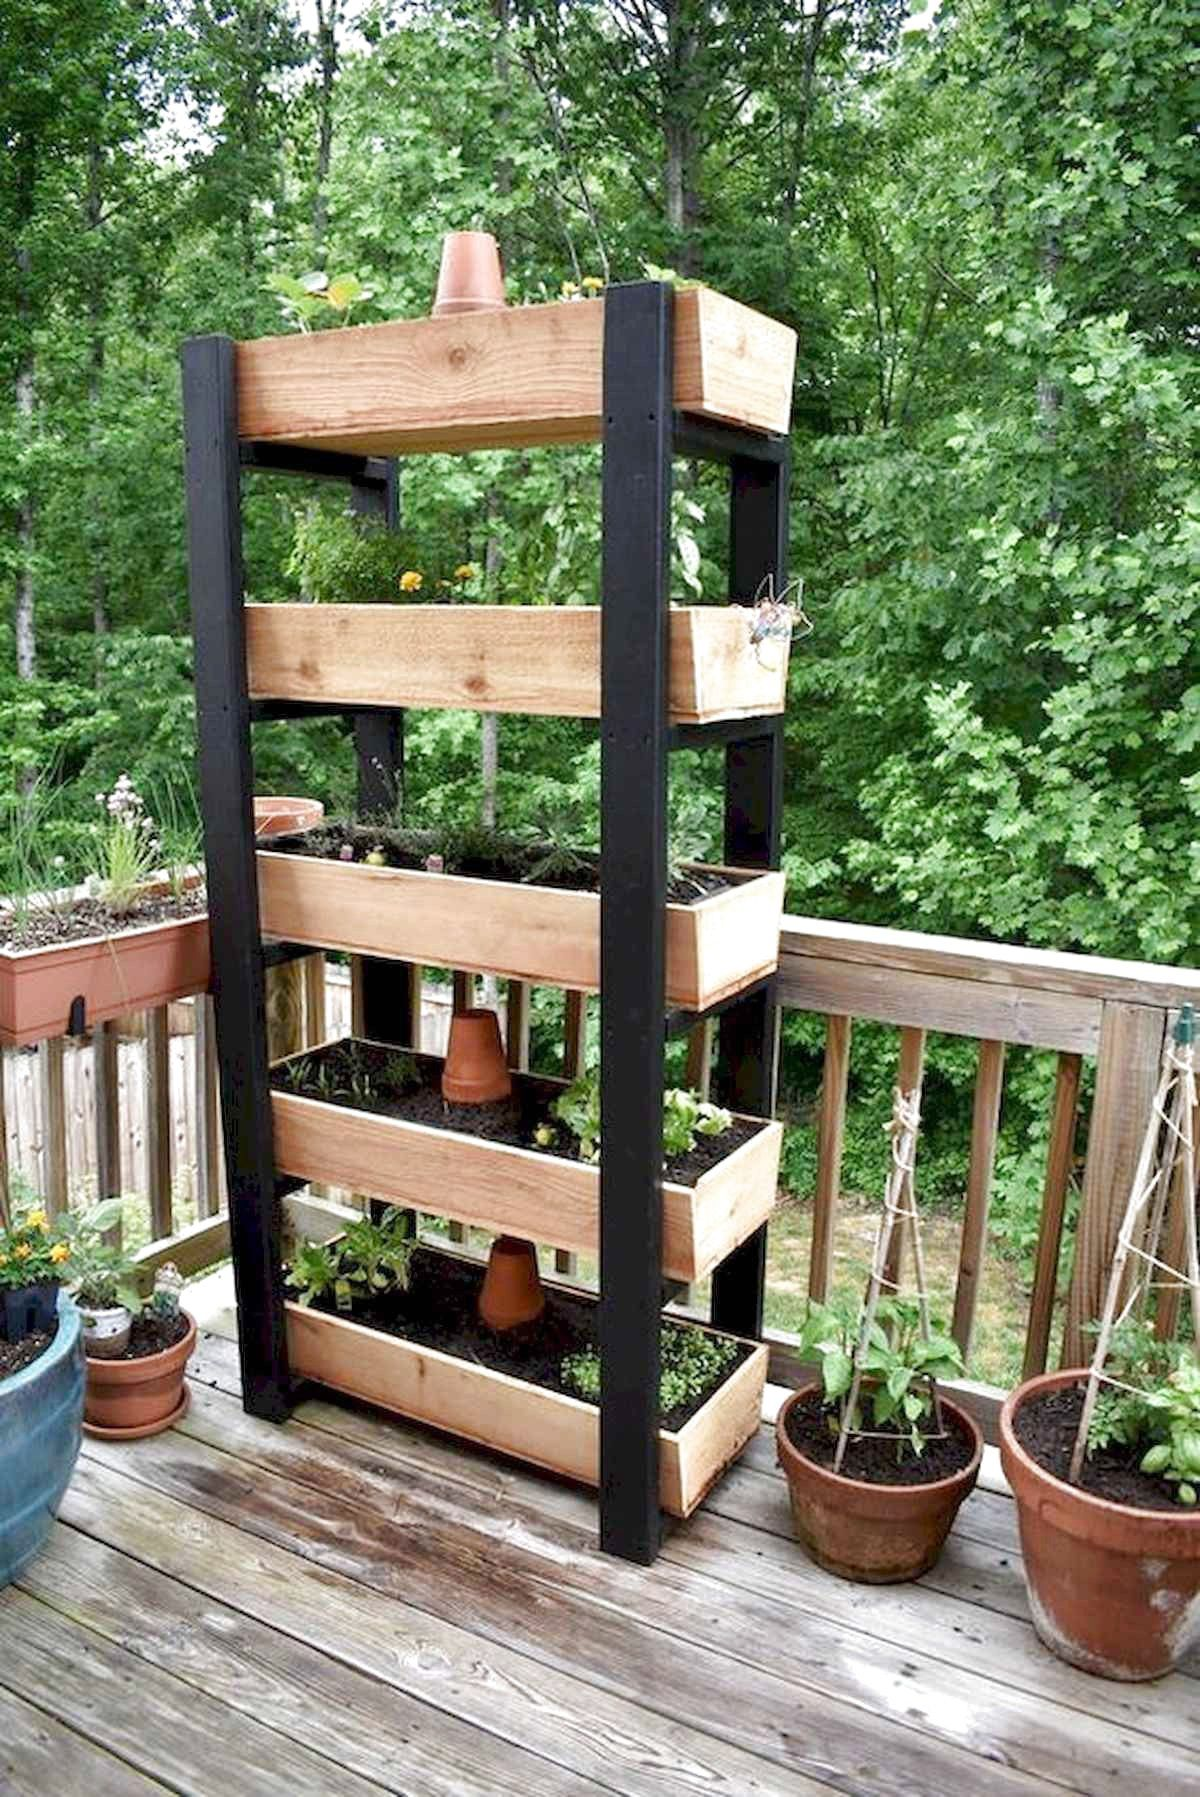 46 Inspiring Herb Garden Design Ideas And Remodel Vertical Garden Diy Vertical Garden Design Herb Garden Design